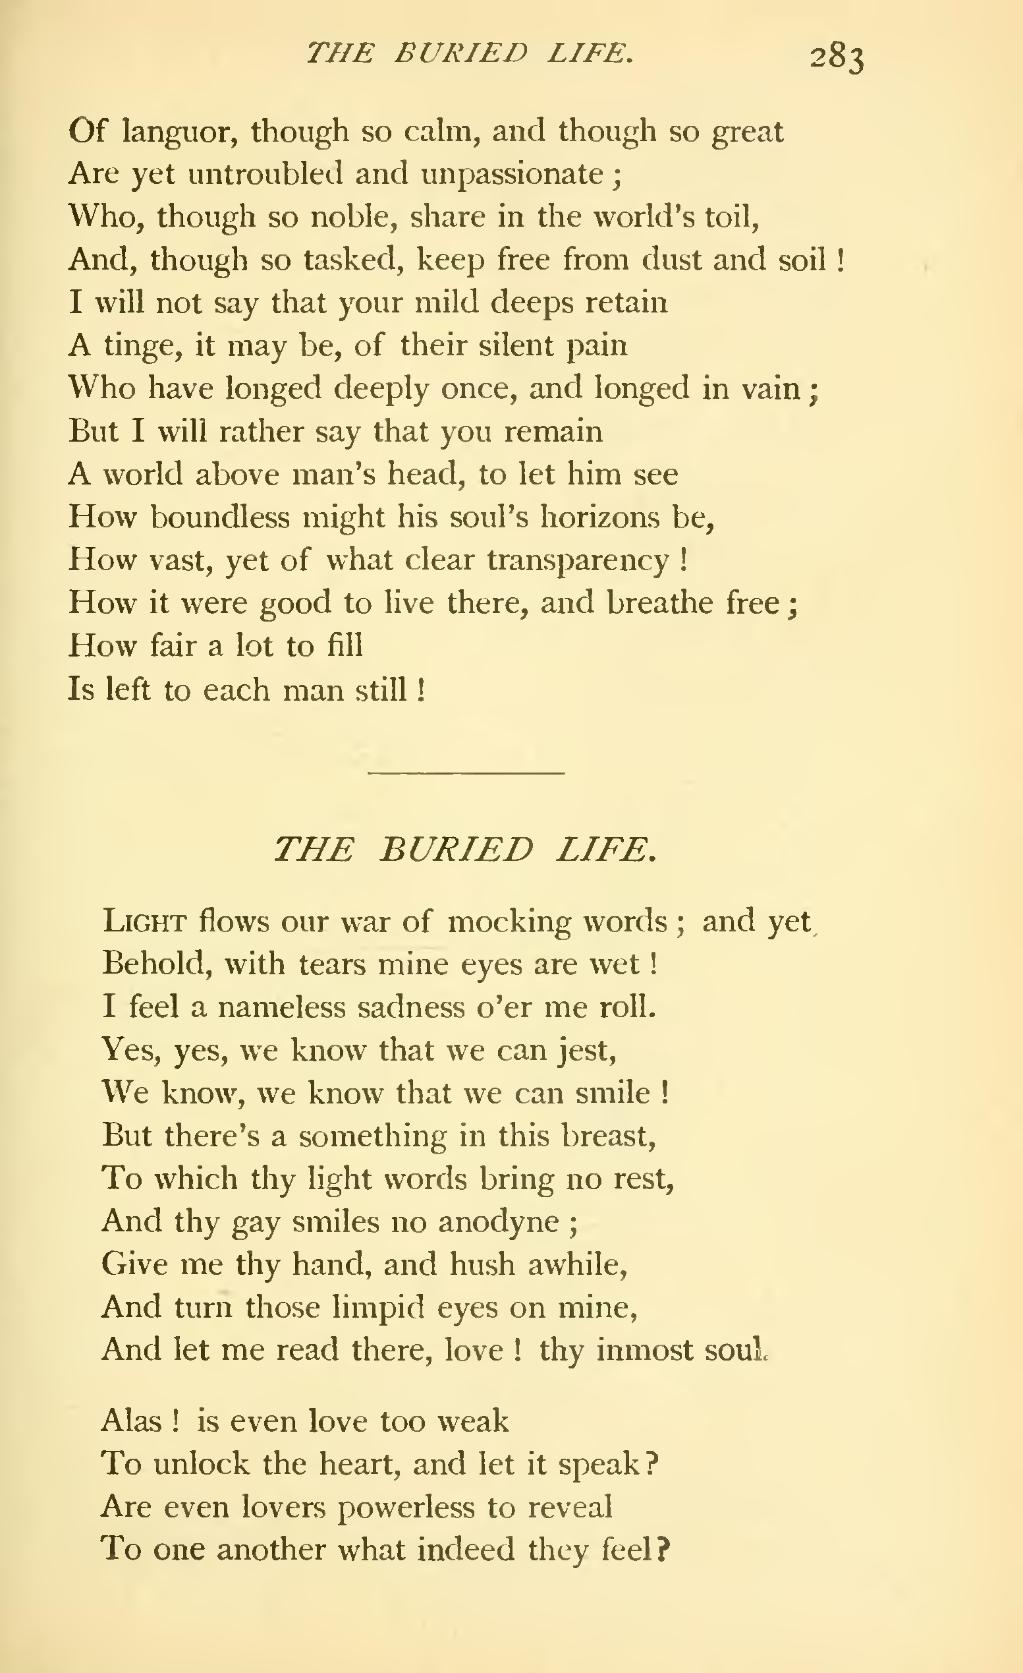 the buried life matthew arnold